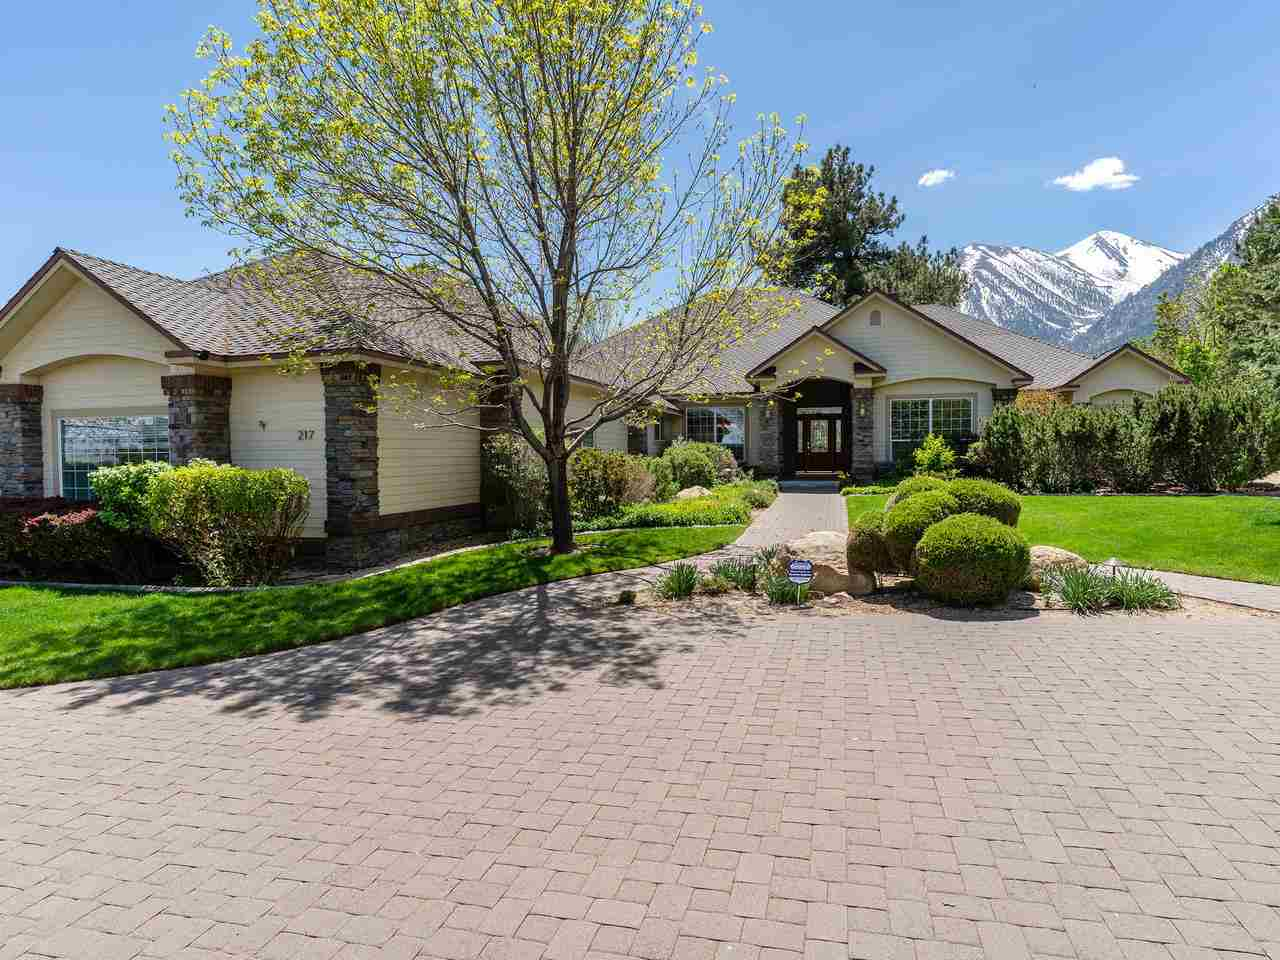 Single Family Homes for Active at 217 Sierra Country Circle Gardnerville, Nevada 89460 United States